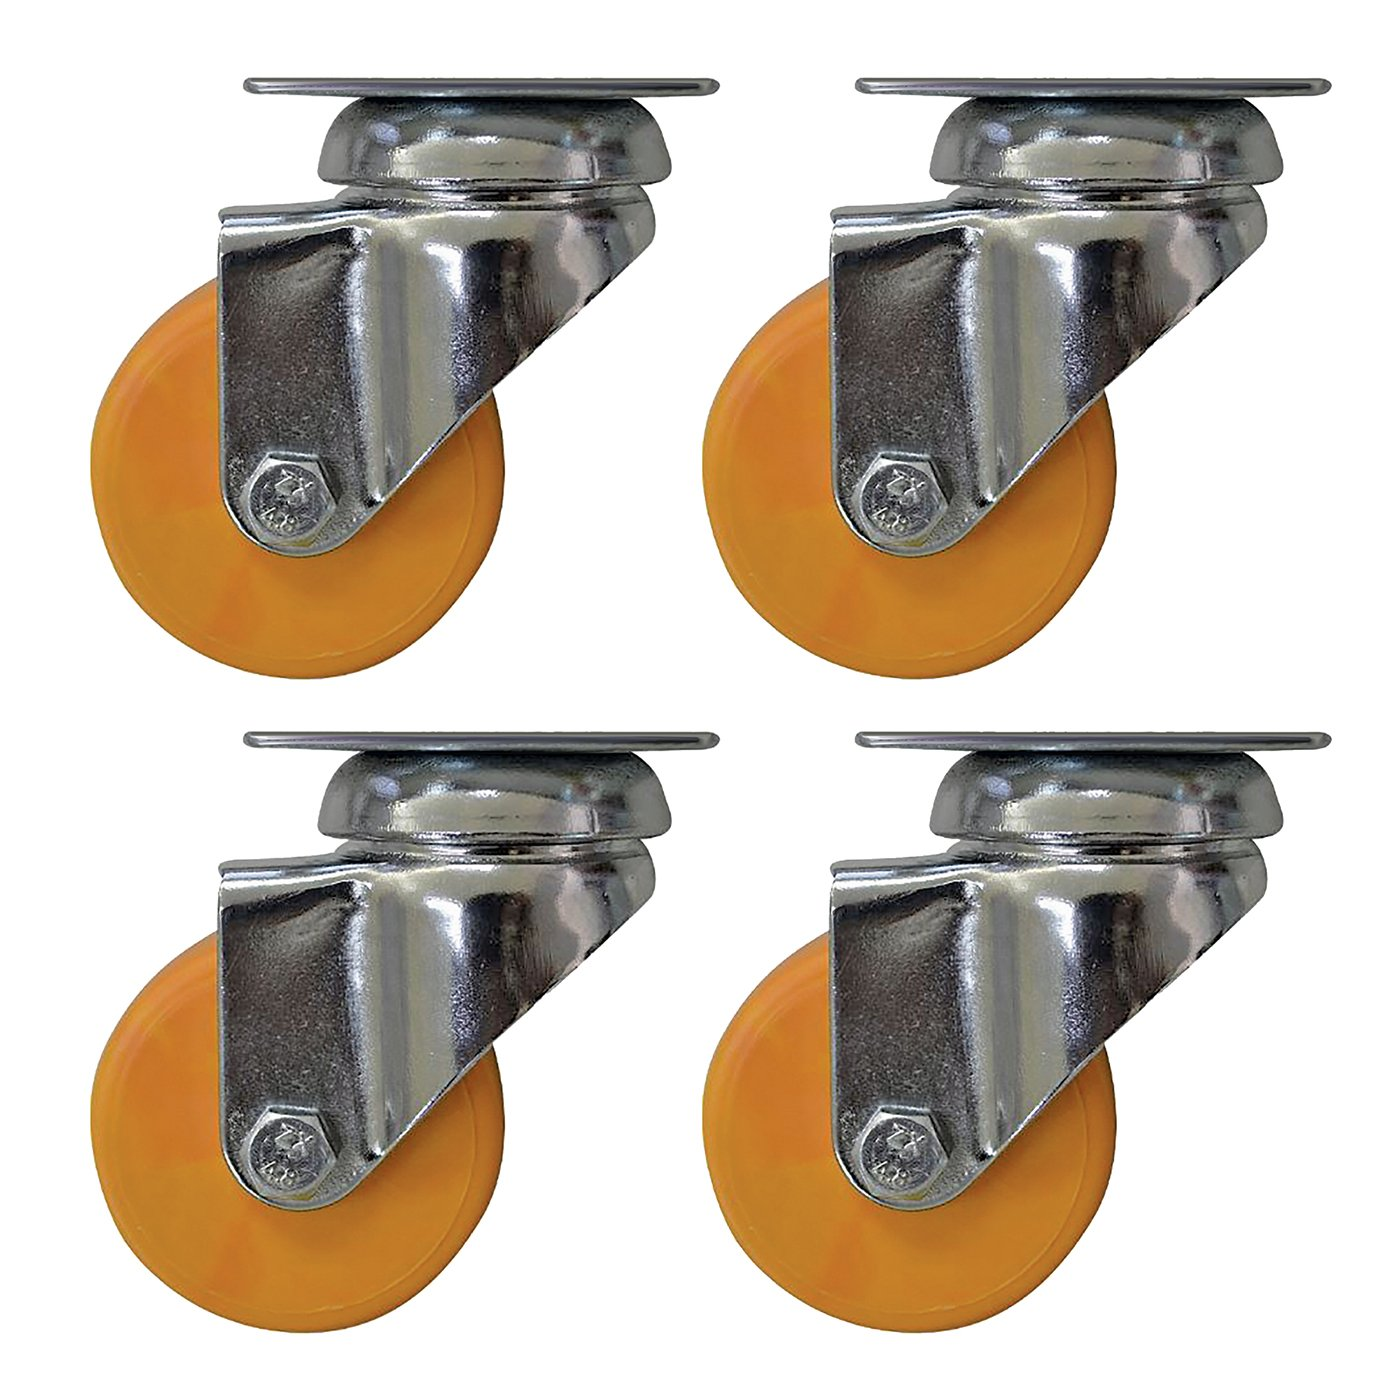 Headbourne 8273E Designer Swivel Plate Casters with 88 Lb. Load Capacity 2 Honey Yellow 4 Pack